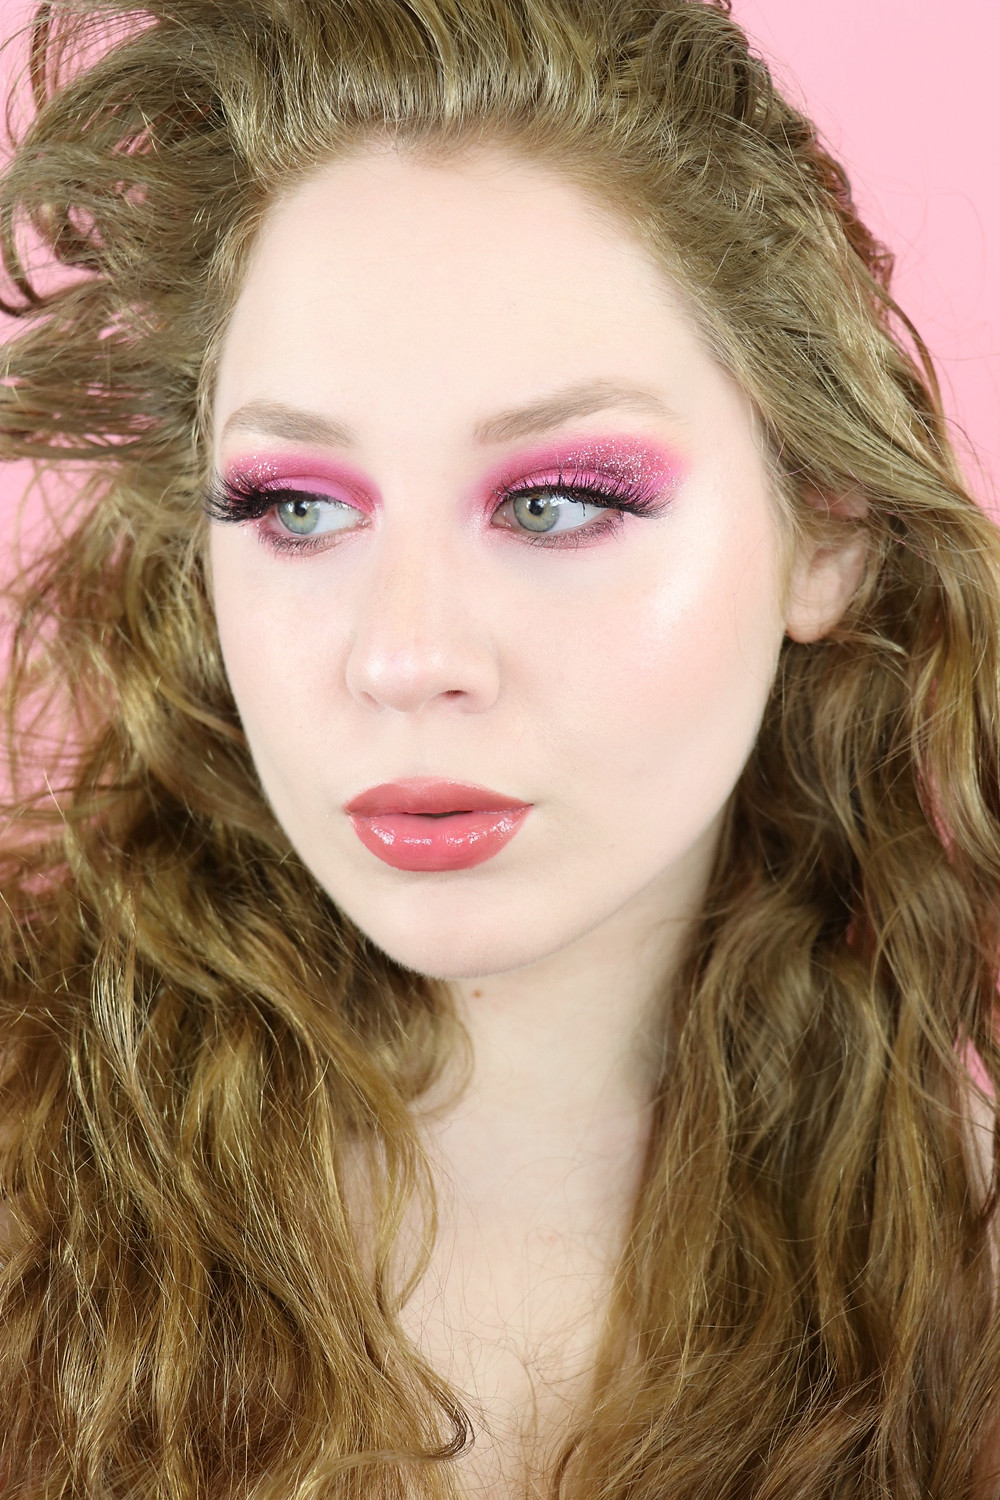 Too Faced Watermelon Slice Glittery Pink Makeup Tutorial 2020 | Lillee Jean